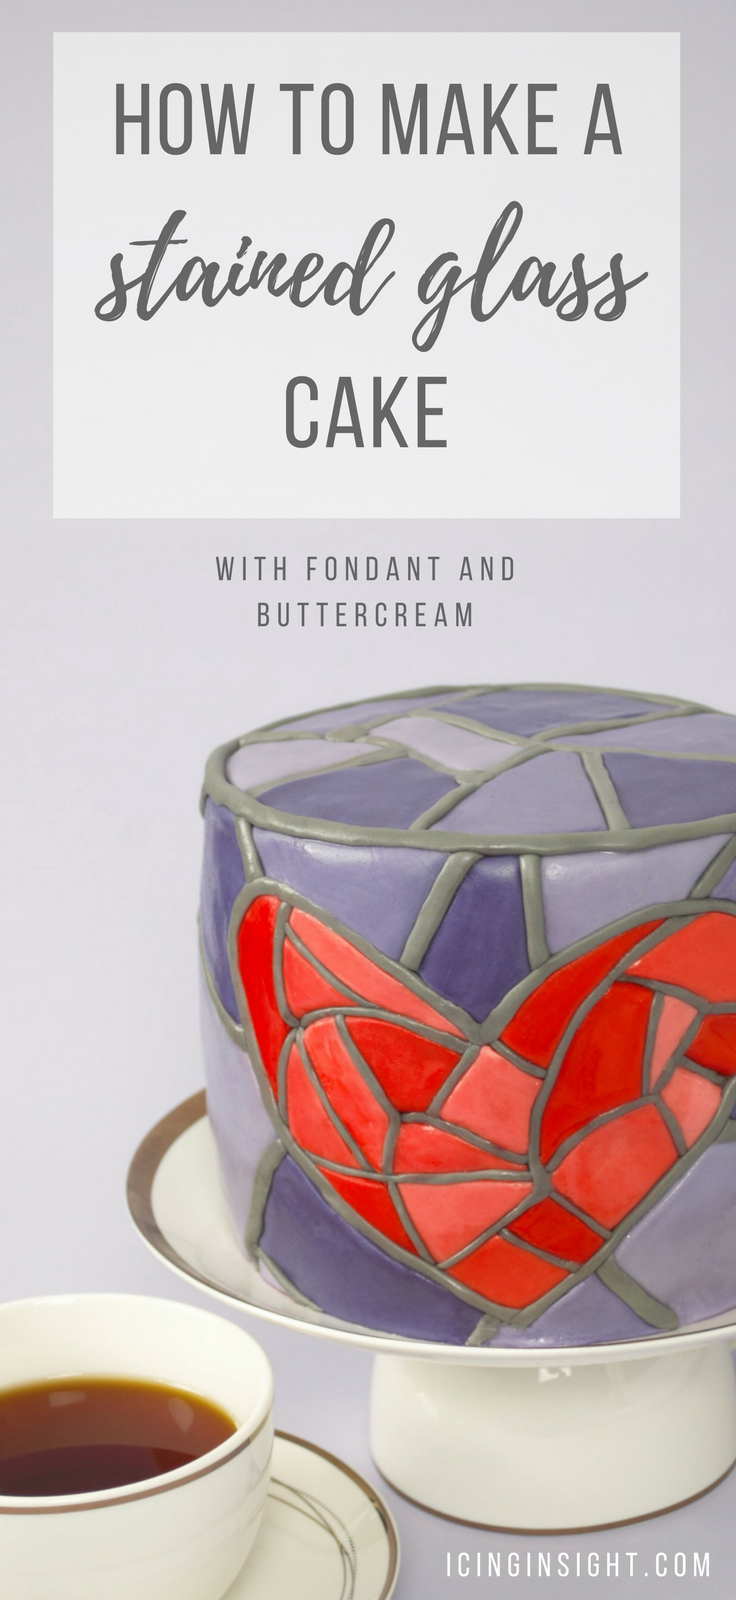 How to make a stained glass cake with fondant and buttercream. Step by step cake decorating tutorial to make the most gorgeous stained glass cake